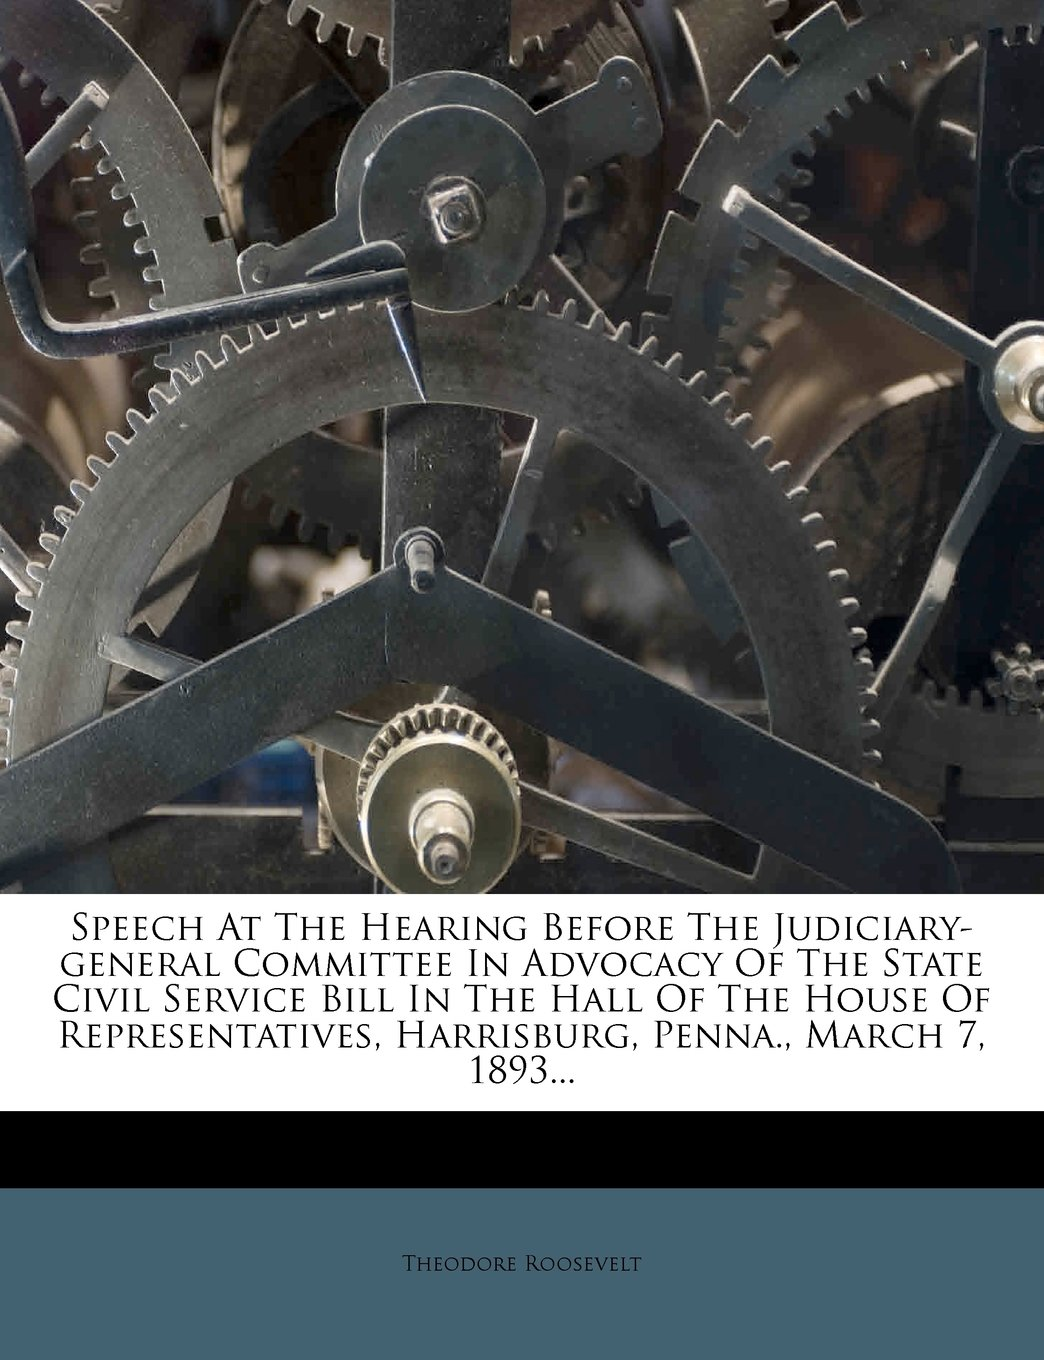 Download Speech At The Hearing Before The Judiciary-general Committee In Advocacy Of The State Civil Service Bill In The Hall Of The House Of Representatives, Harrisburg, Penna., March 7, 1893... pdf